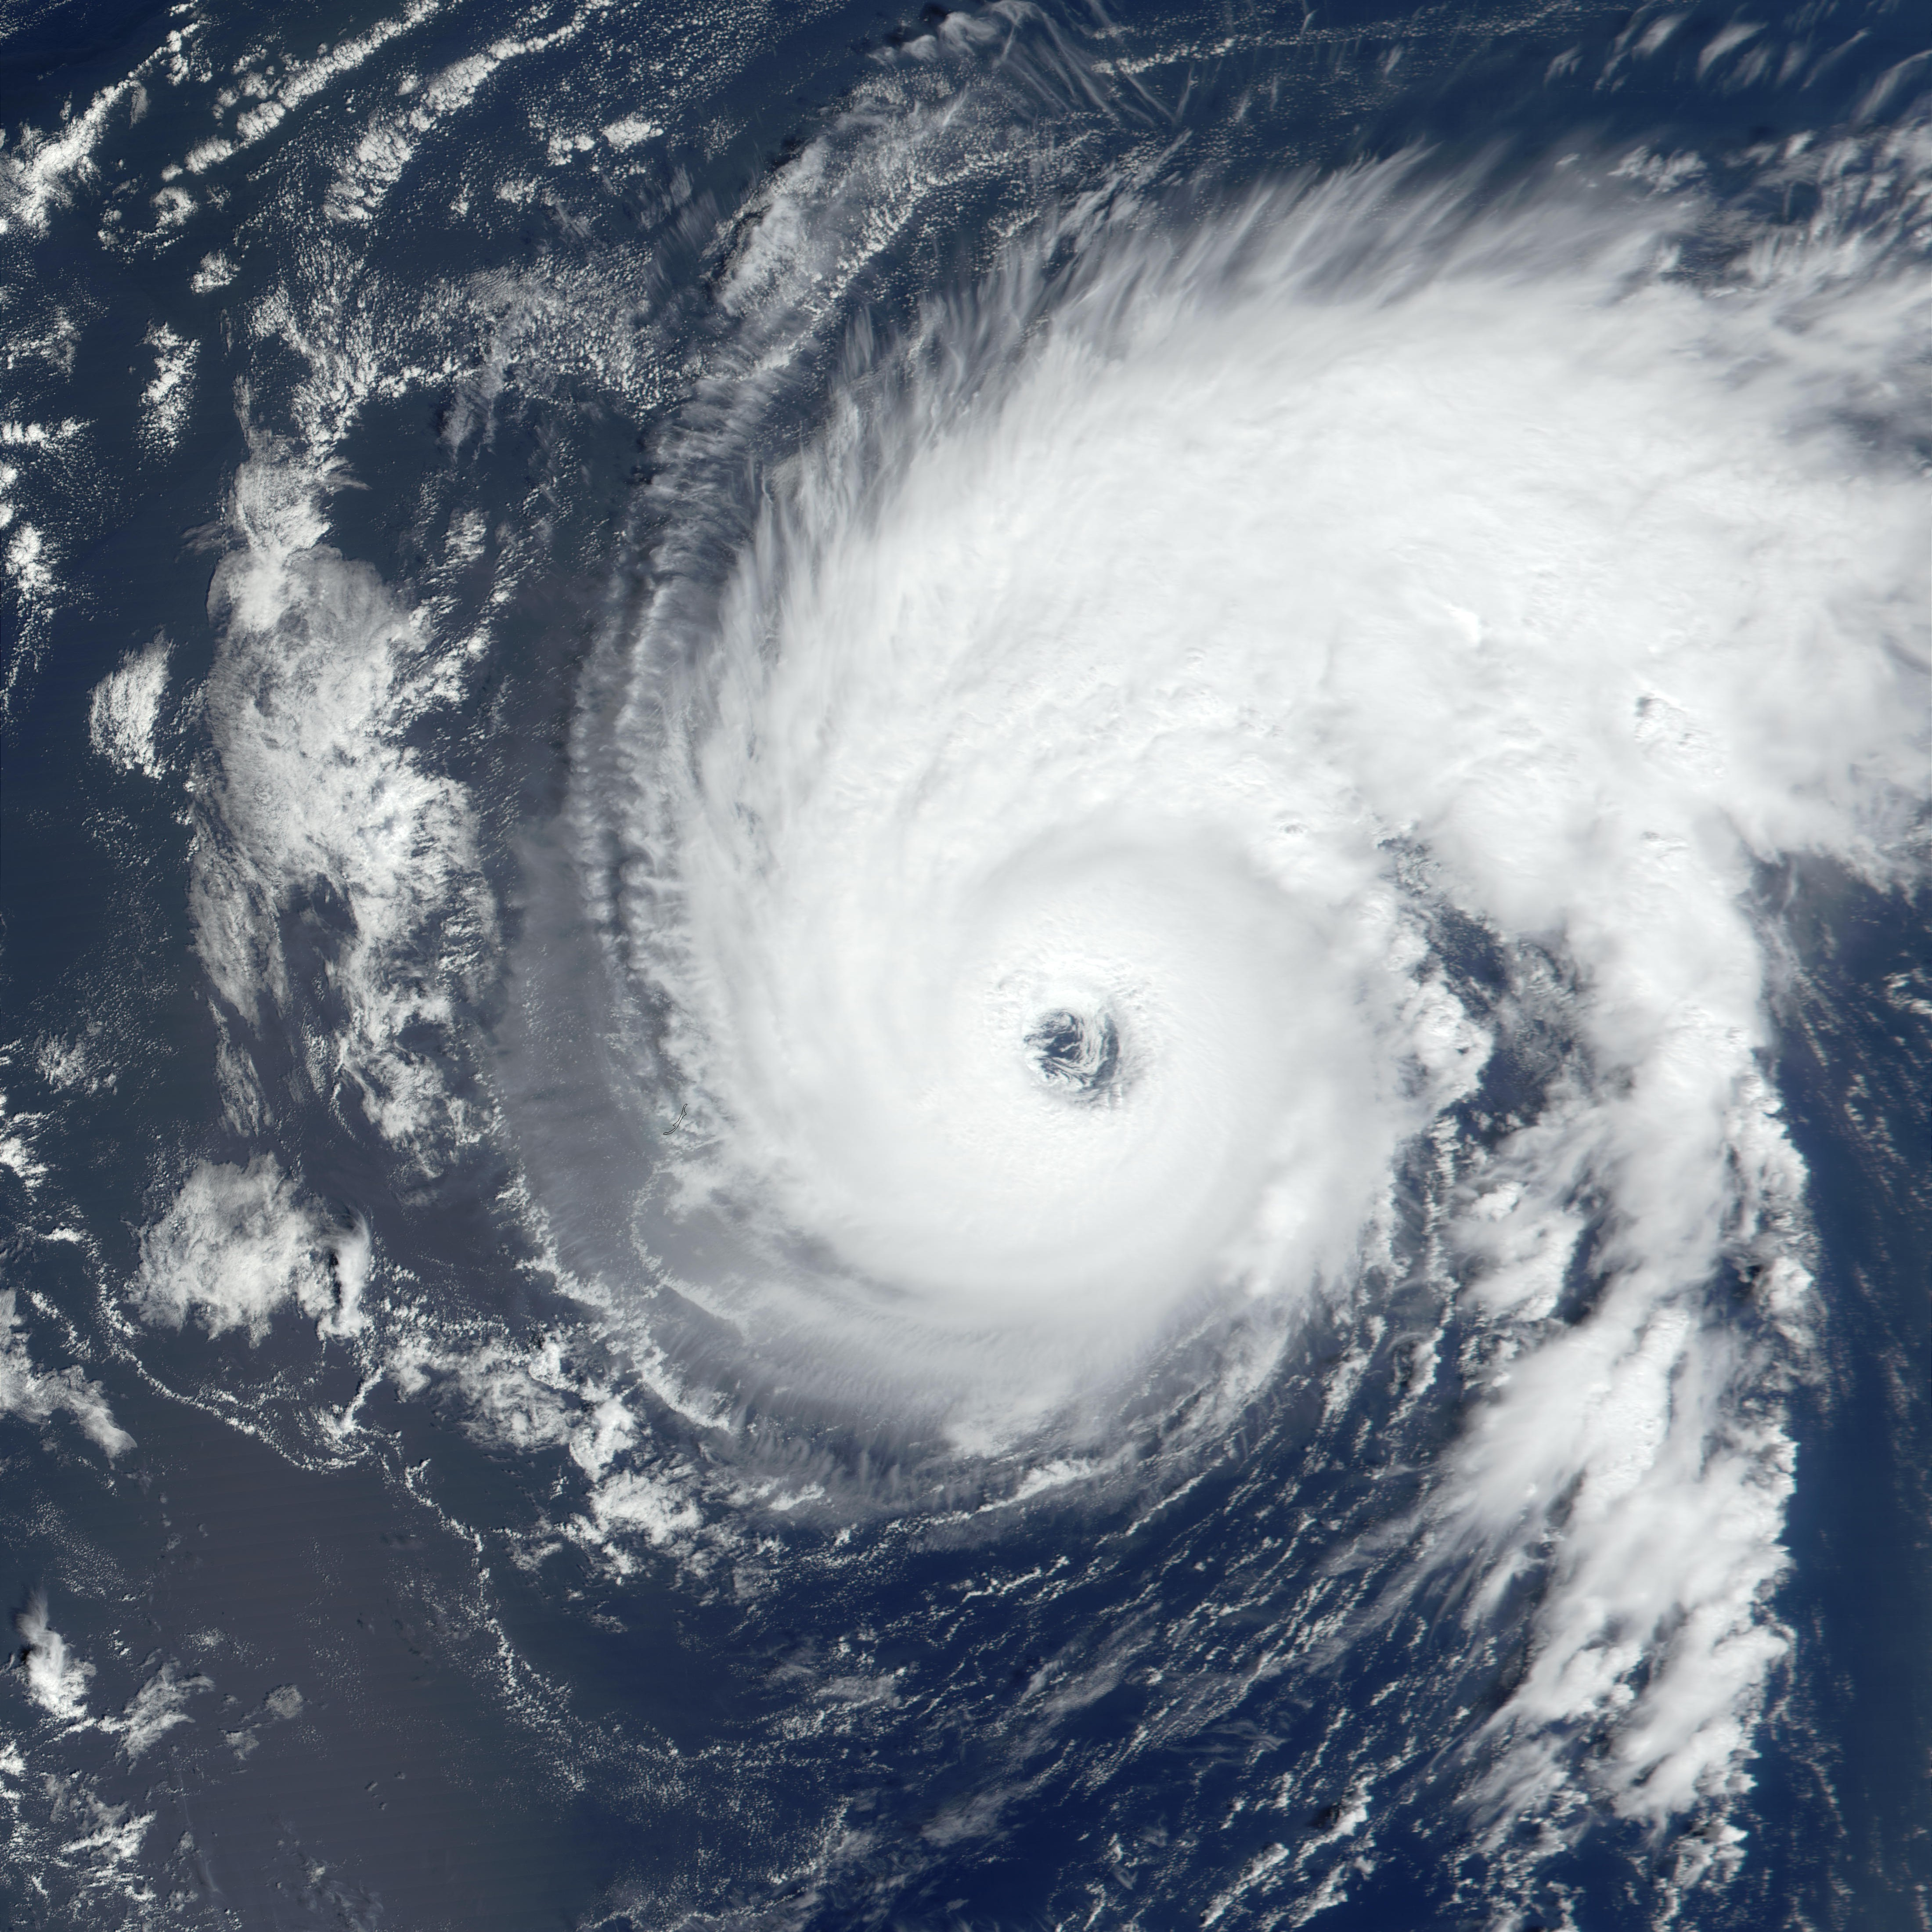 an analysis of the characteristics of hurricanes a natural disaster Geographical and natural characteristics of location which may make more prone for  for the analysis of natural disaster in localities and factors that may be .